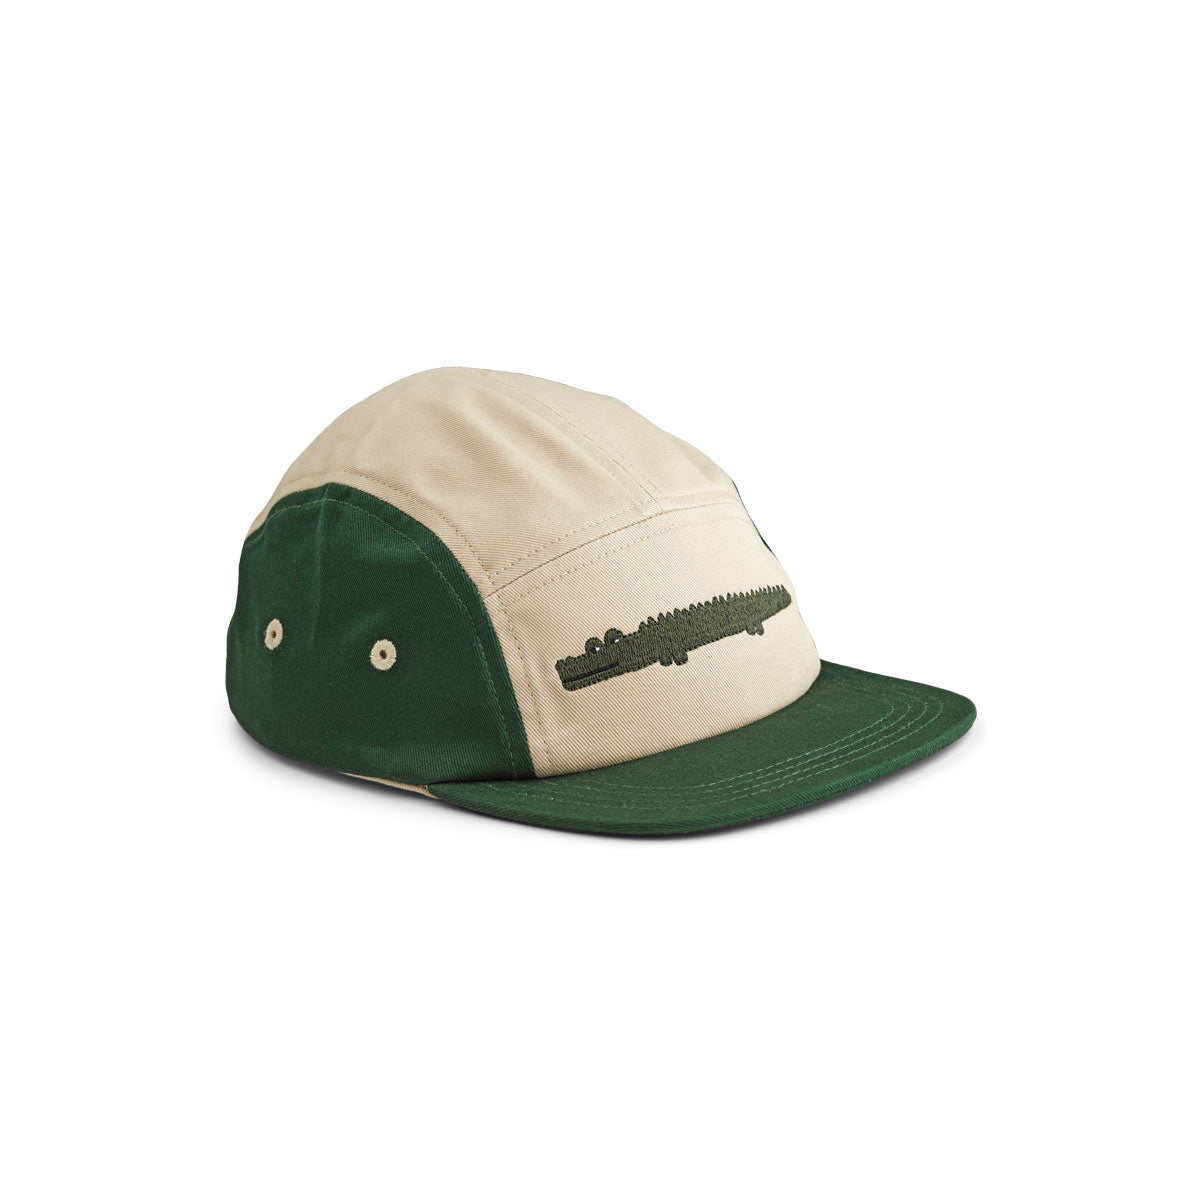 Rory Cap - Crocodile garden green mix